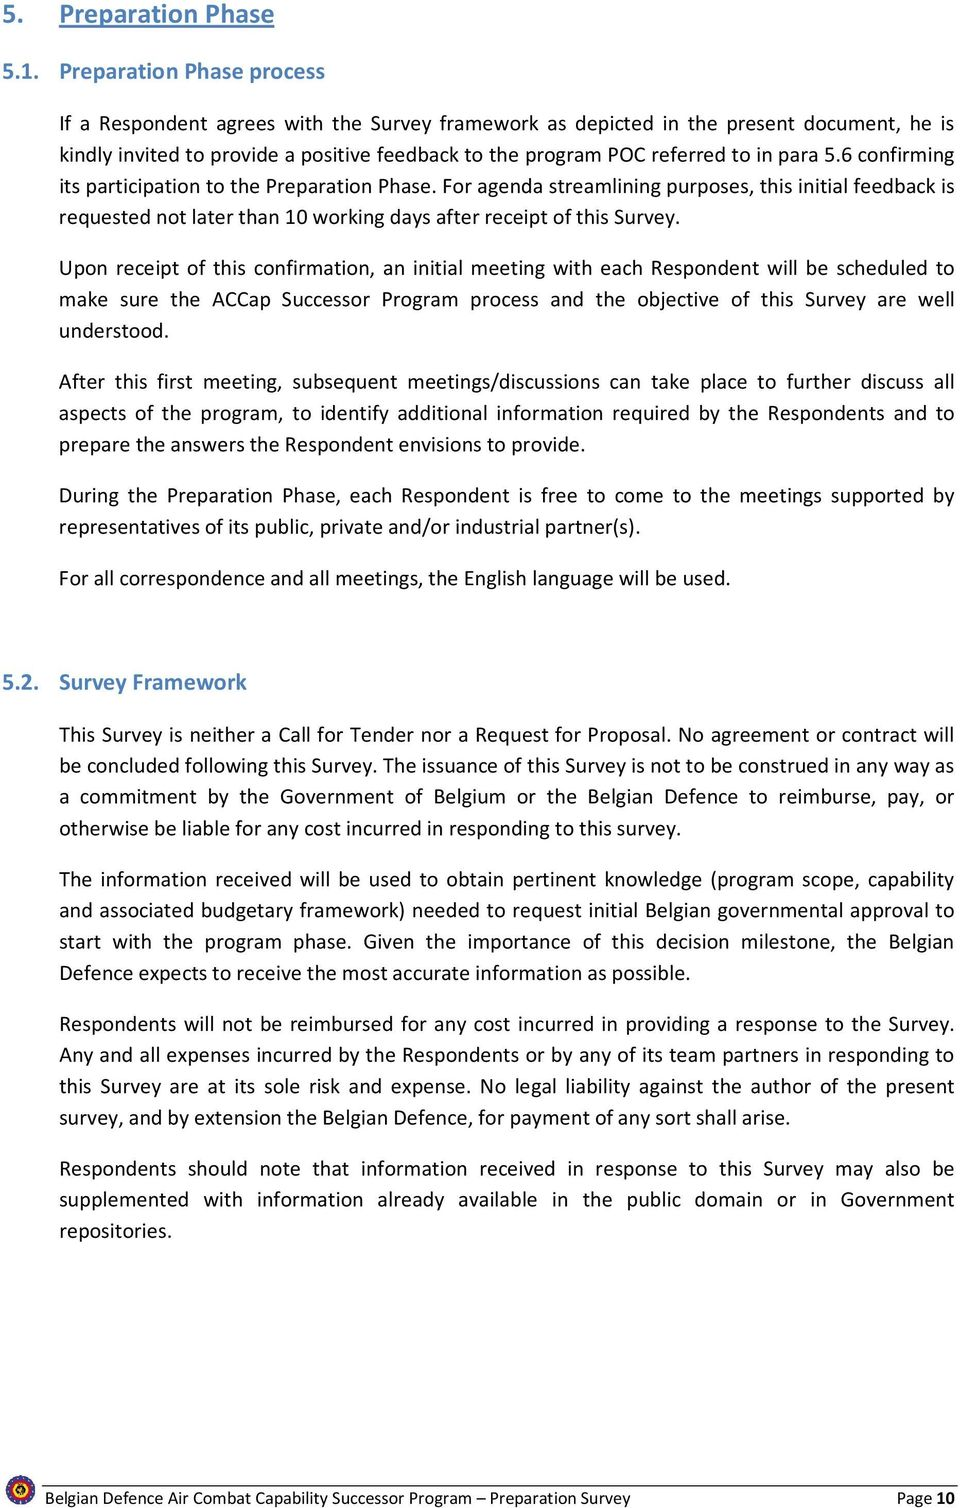 para 5.6 confirming its participation to the Preparation Phase. For agenda streamlining purposes, this initial feedback is requested not later than 10 working days after receipt of this Survey.